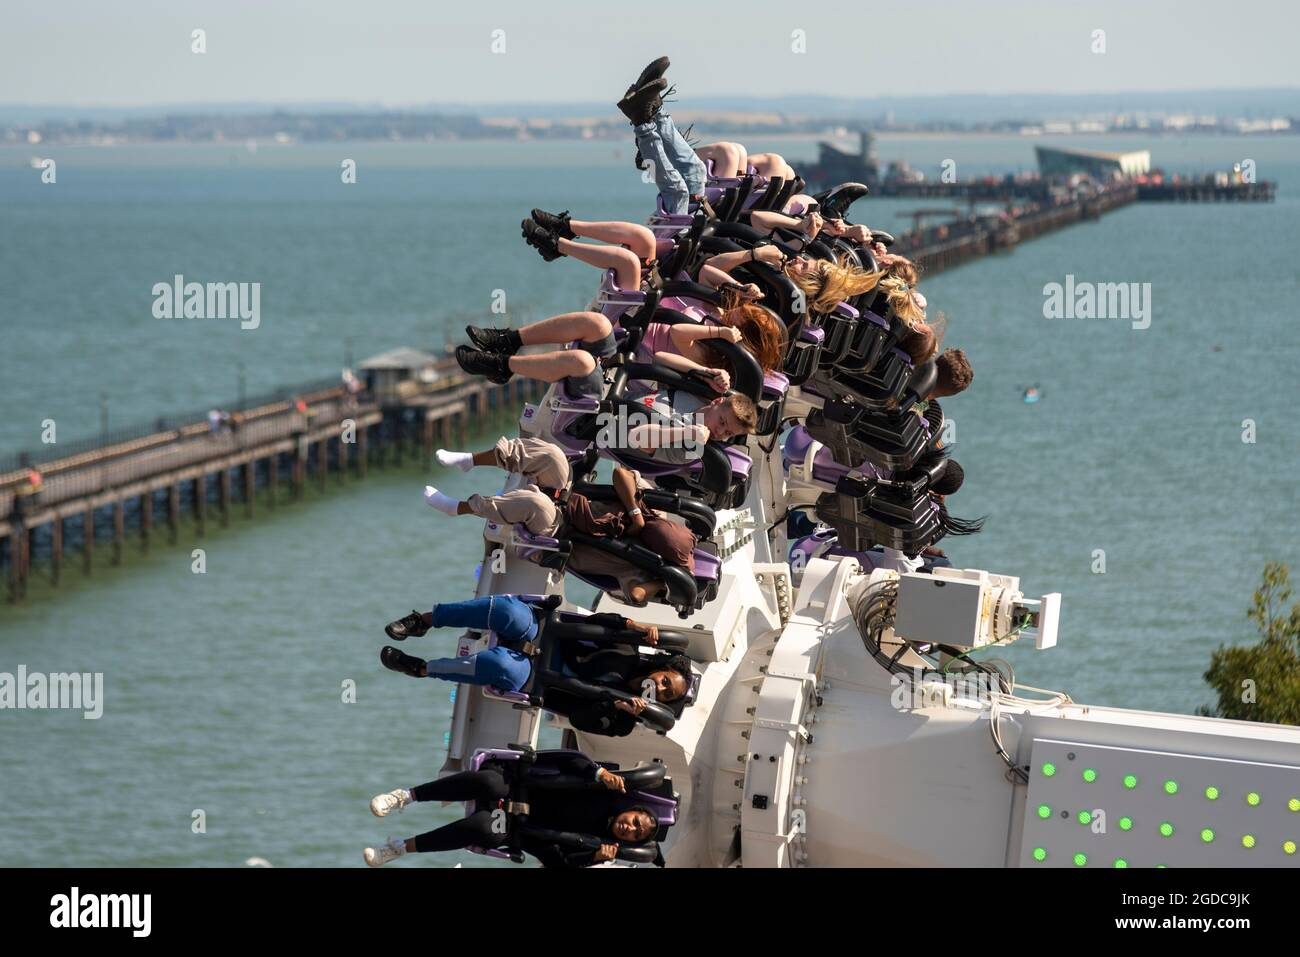 thrill-riders-on-axis-ride-on-seafront-theme-park-of-southend-on-sea-essex-uk-as-england-opens-up-after-lockdown-2GDC9JK.jpg